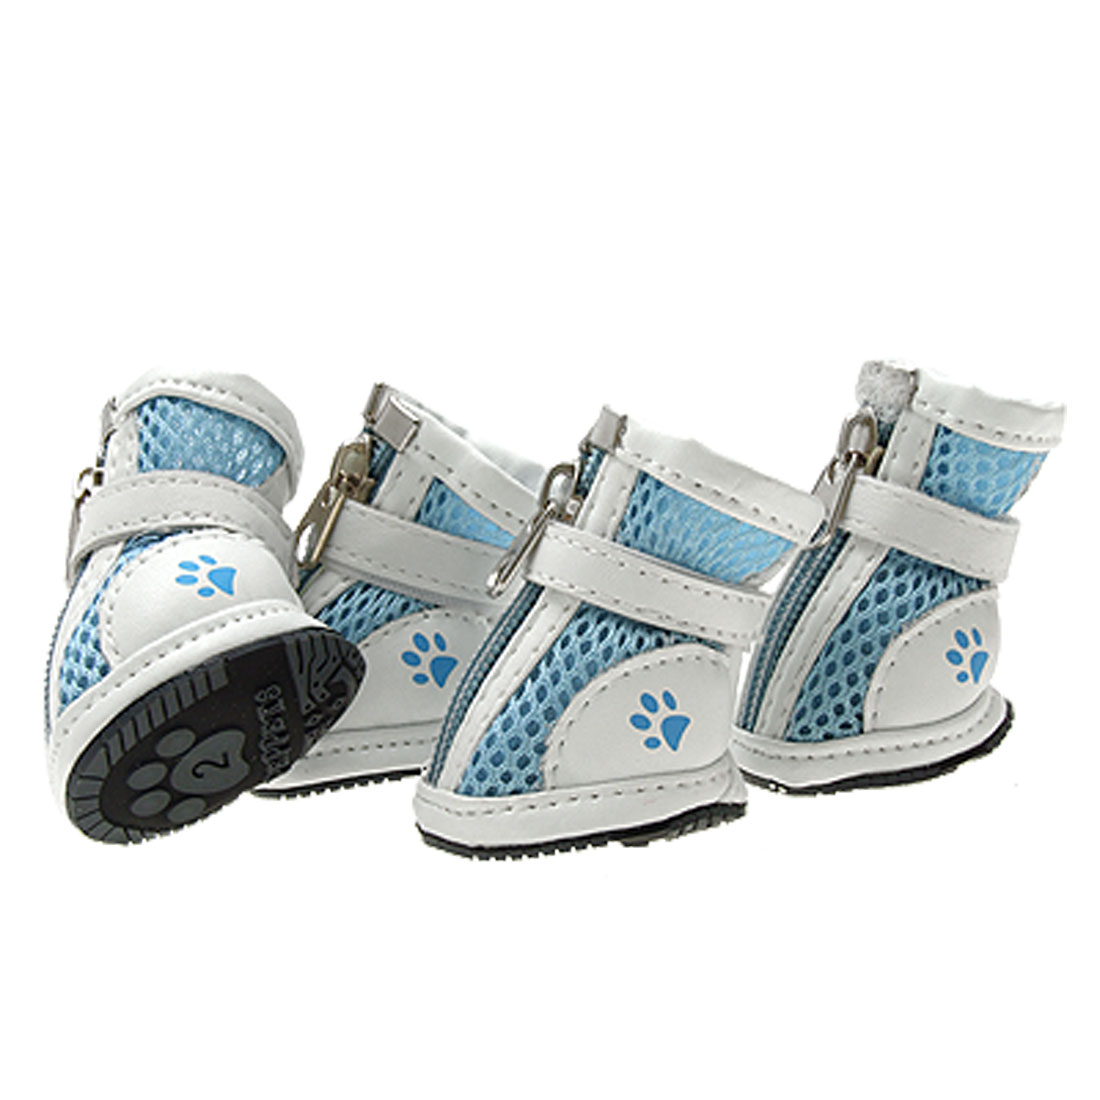 Fashion Small Protective Paw Boot Light Blue Pet Dog Shoes 2#